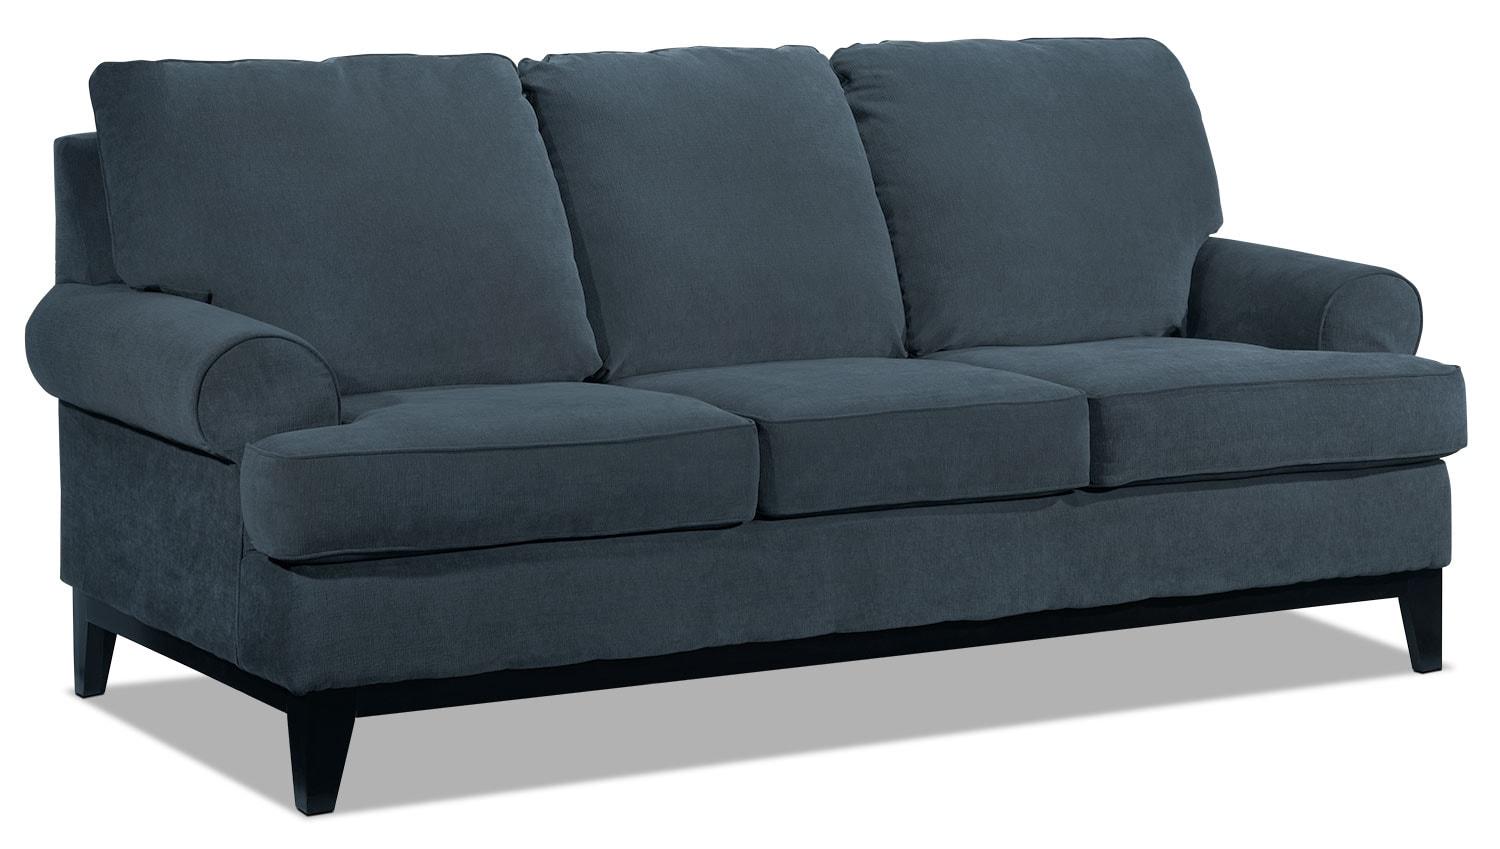 Living Room Furniture - Crizia Sofa - Navy